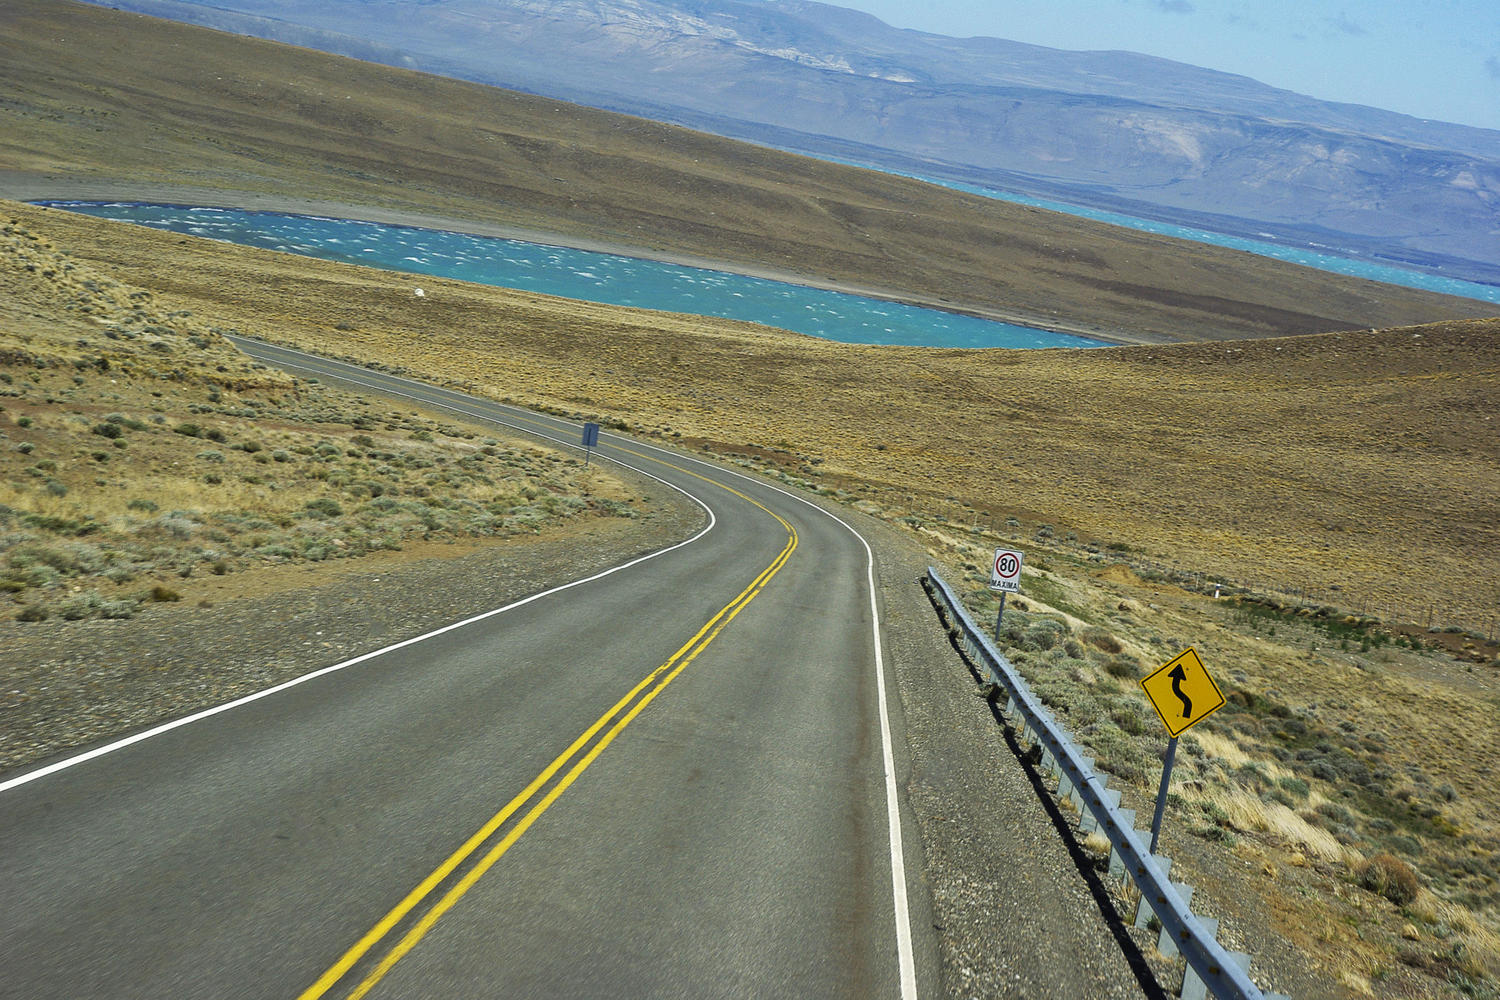 Driving around lagoons between El Calafate and El Chalten